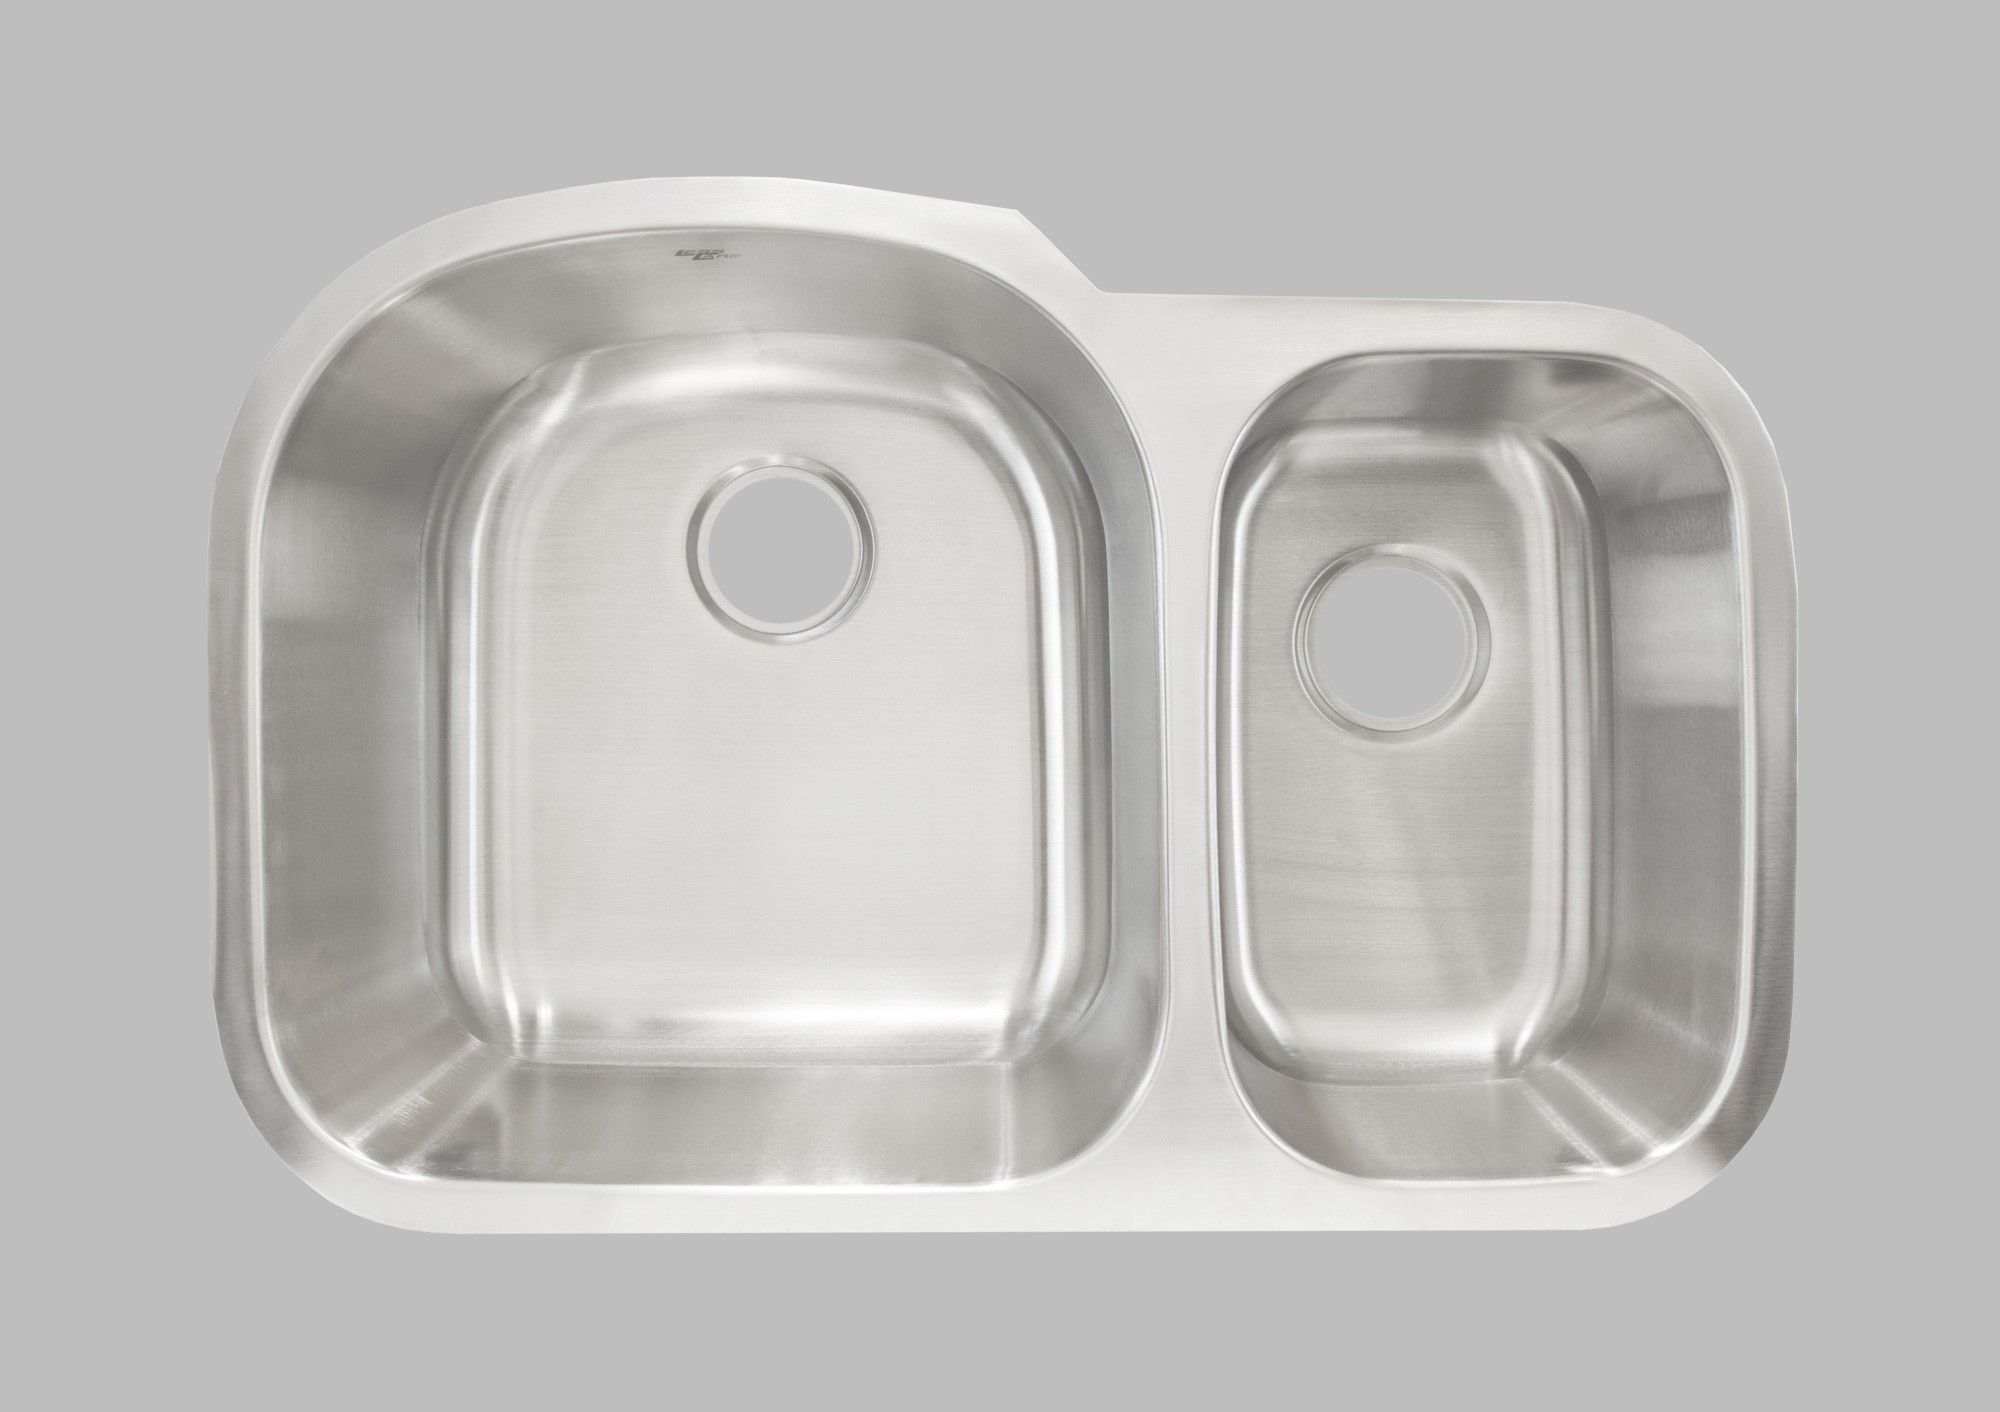 Undermount Double Bowl Sink Lcl201r 31 3 8 W X 20 5 8 L X 9 Deep